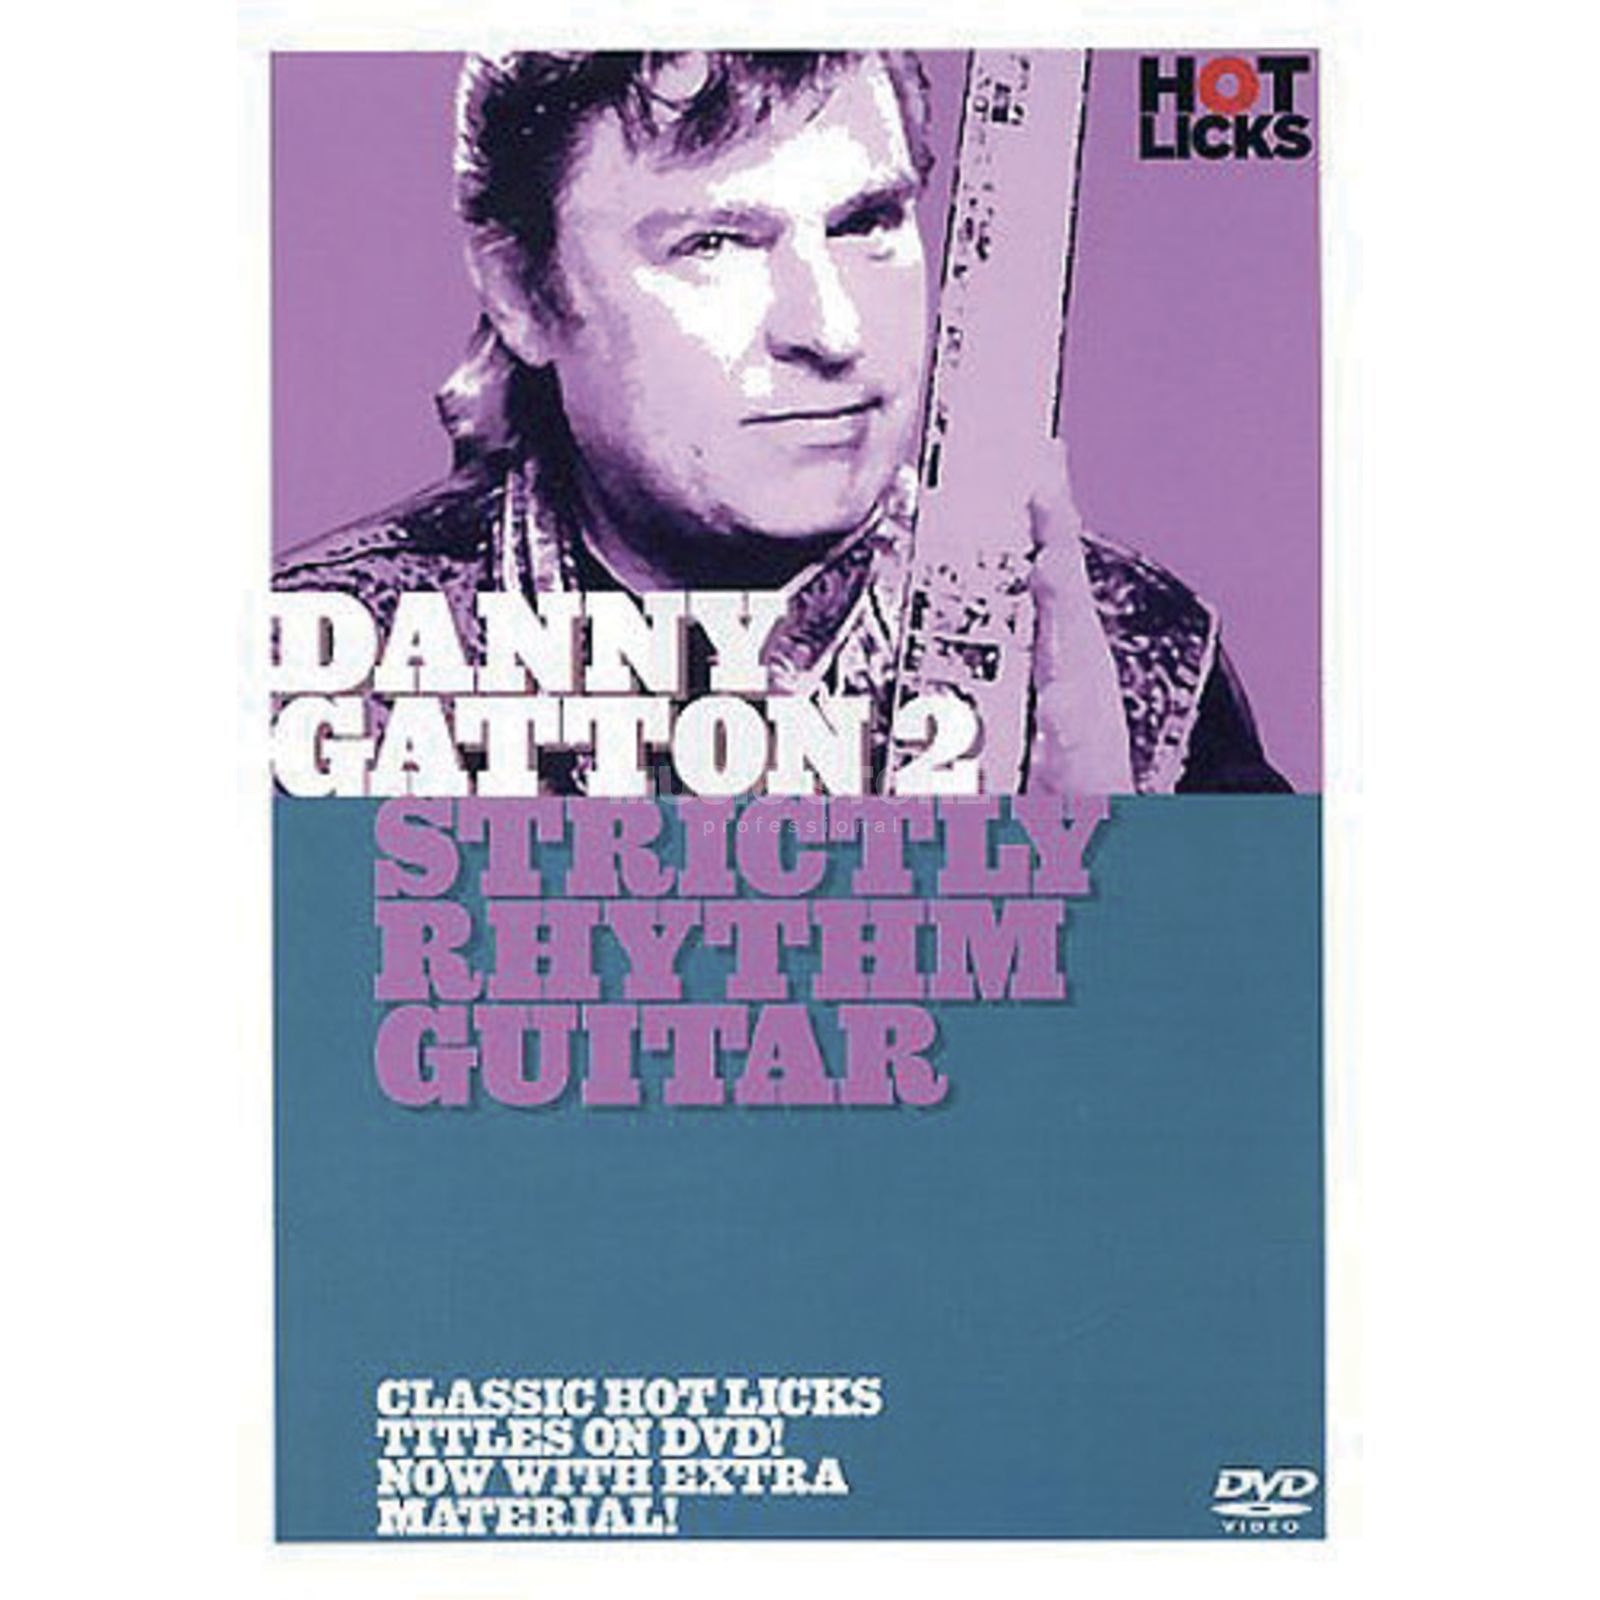 Hotlicks Videos Gatton 2 - Strictly Rhythm Hot Licks Guitar, DVD Produktbild